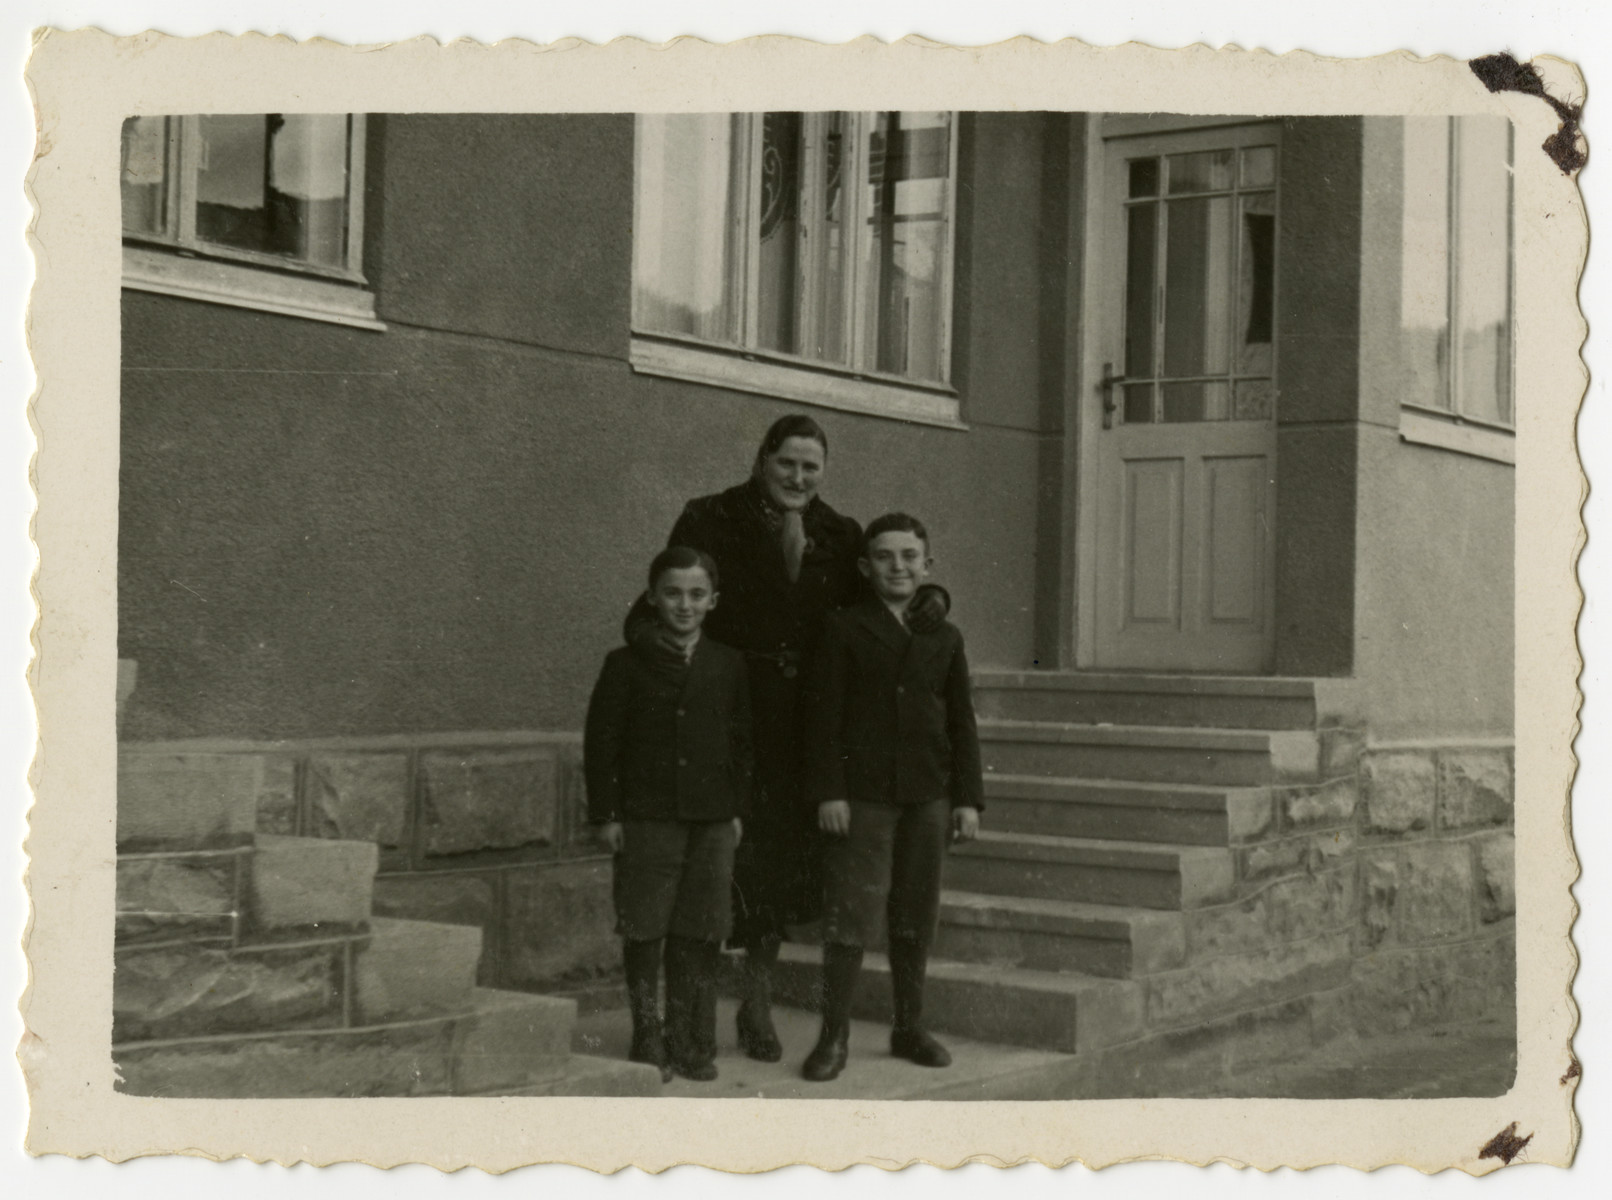 Benek Lieblein stands outside his home with his aunt Frieda Rozenberg Josefsberg and his older brother Dolek.